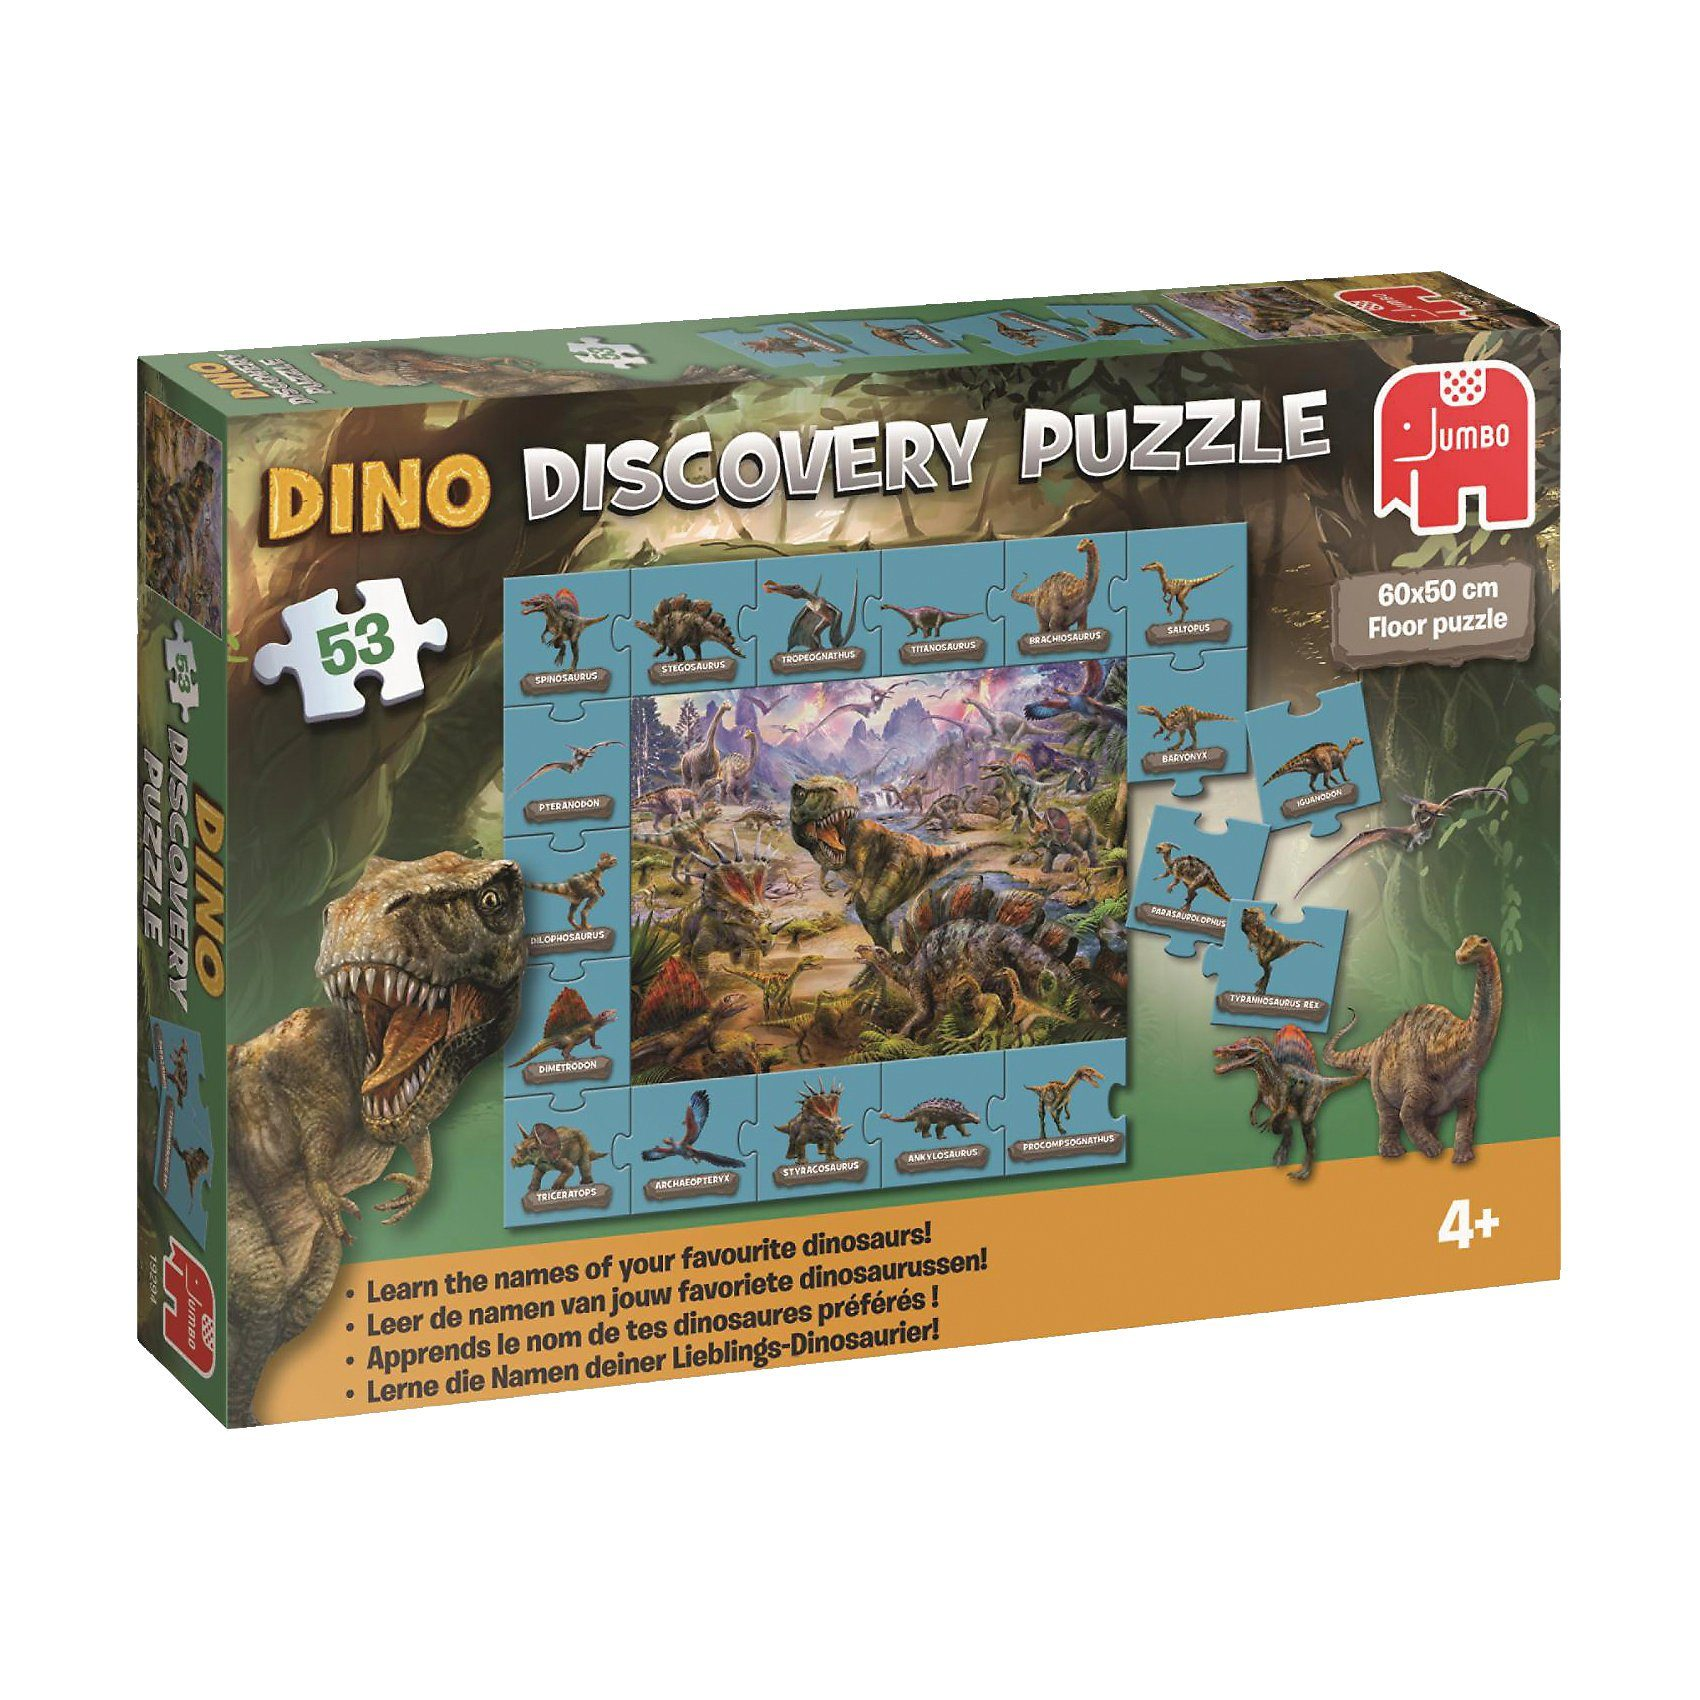 Jumbo Dinosaurier Discovery Puzzle - 53 Teile